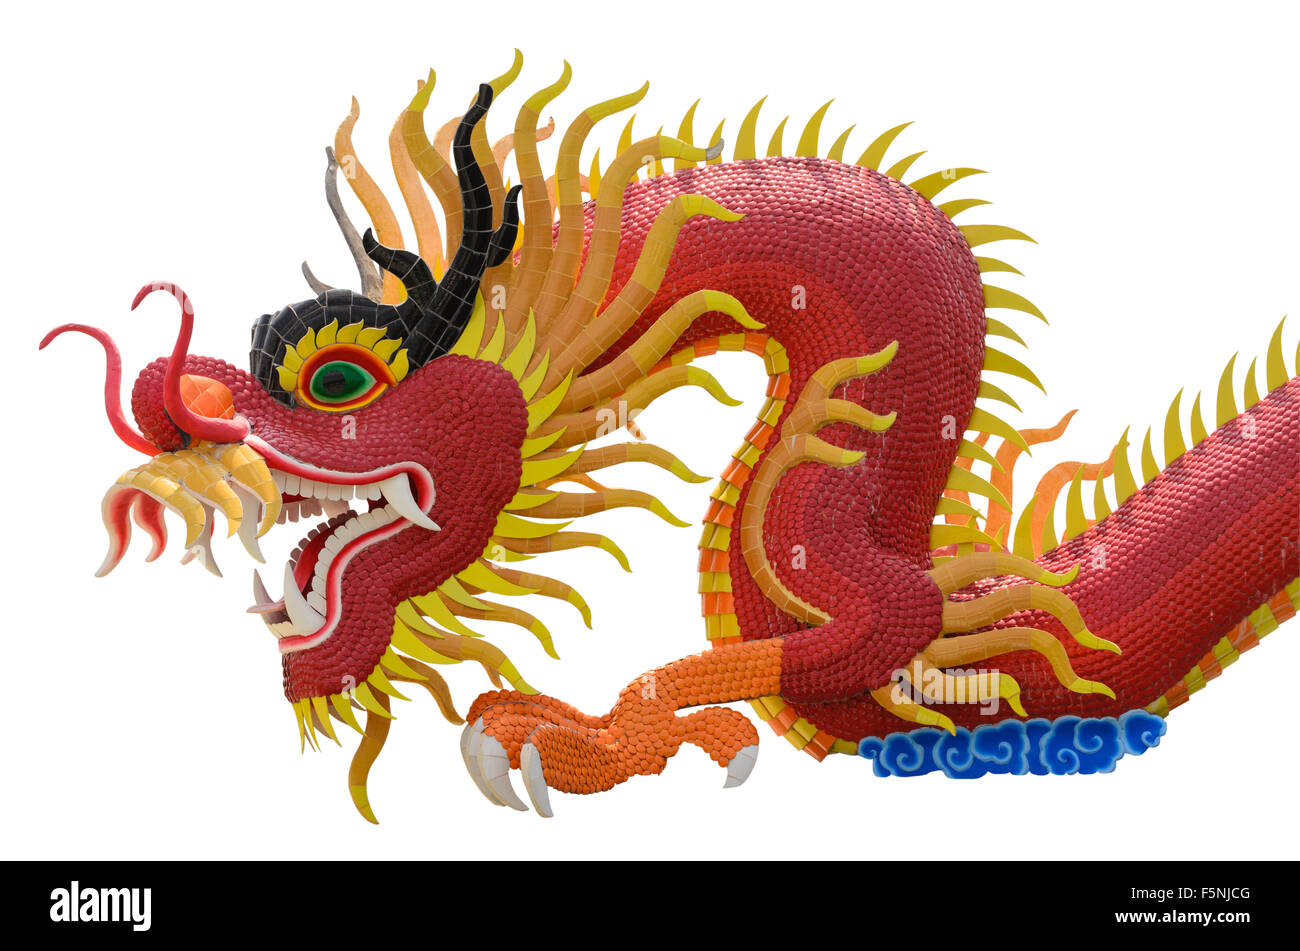 Image dragon chinois sur fonds blancs. Photo Stock